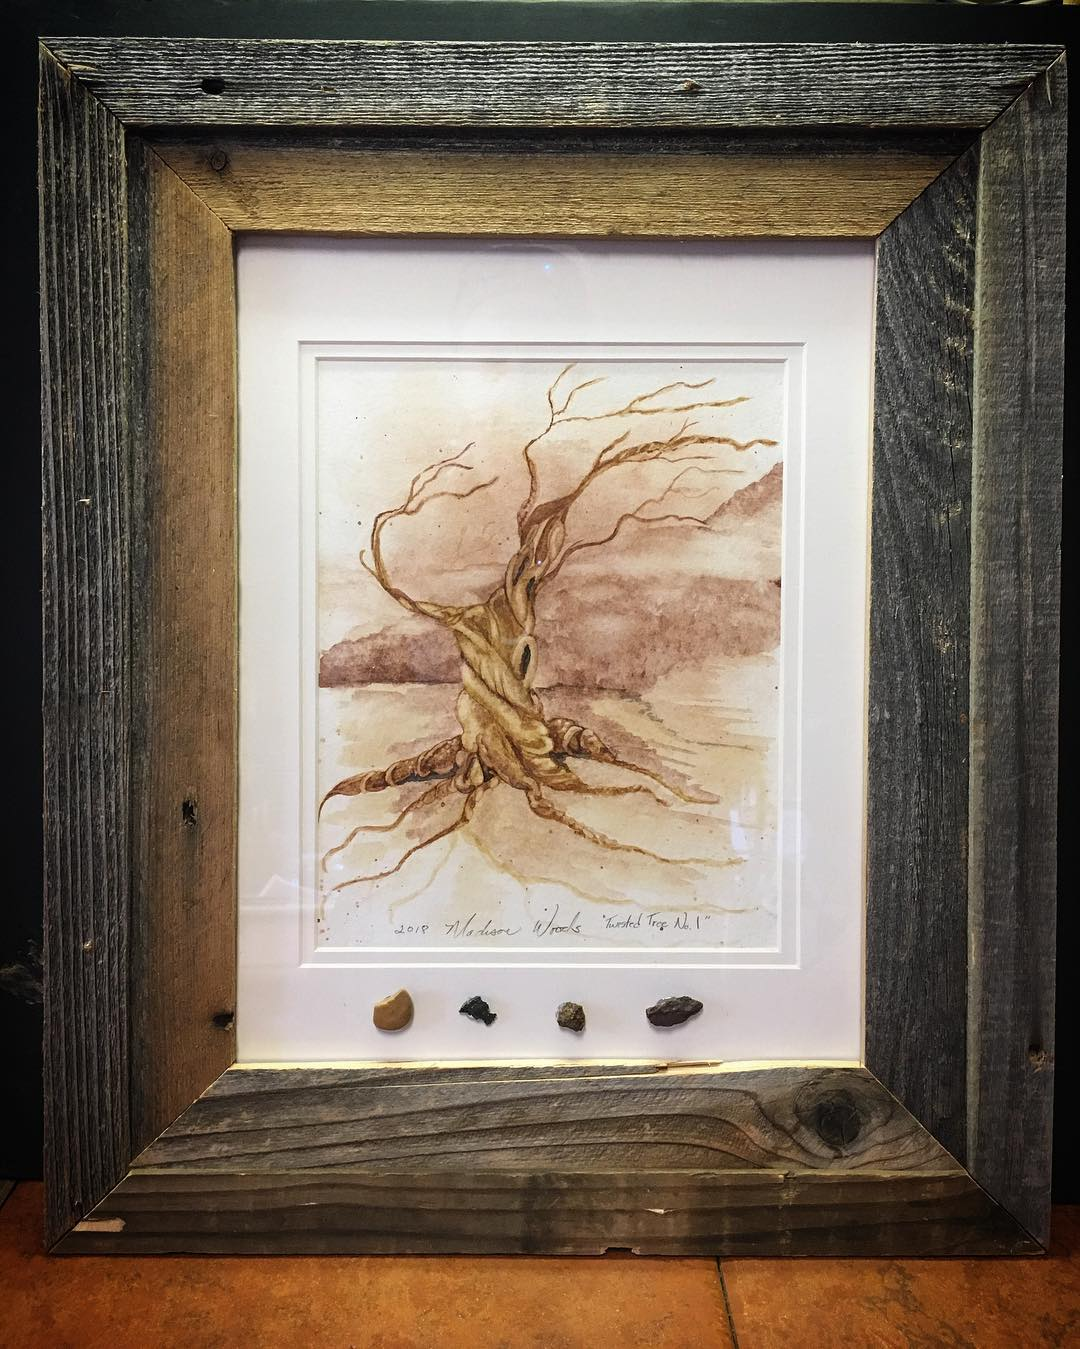 Not a monochrome, but a twisted tree framed with rock pigment samples.